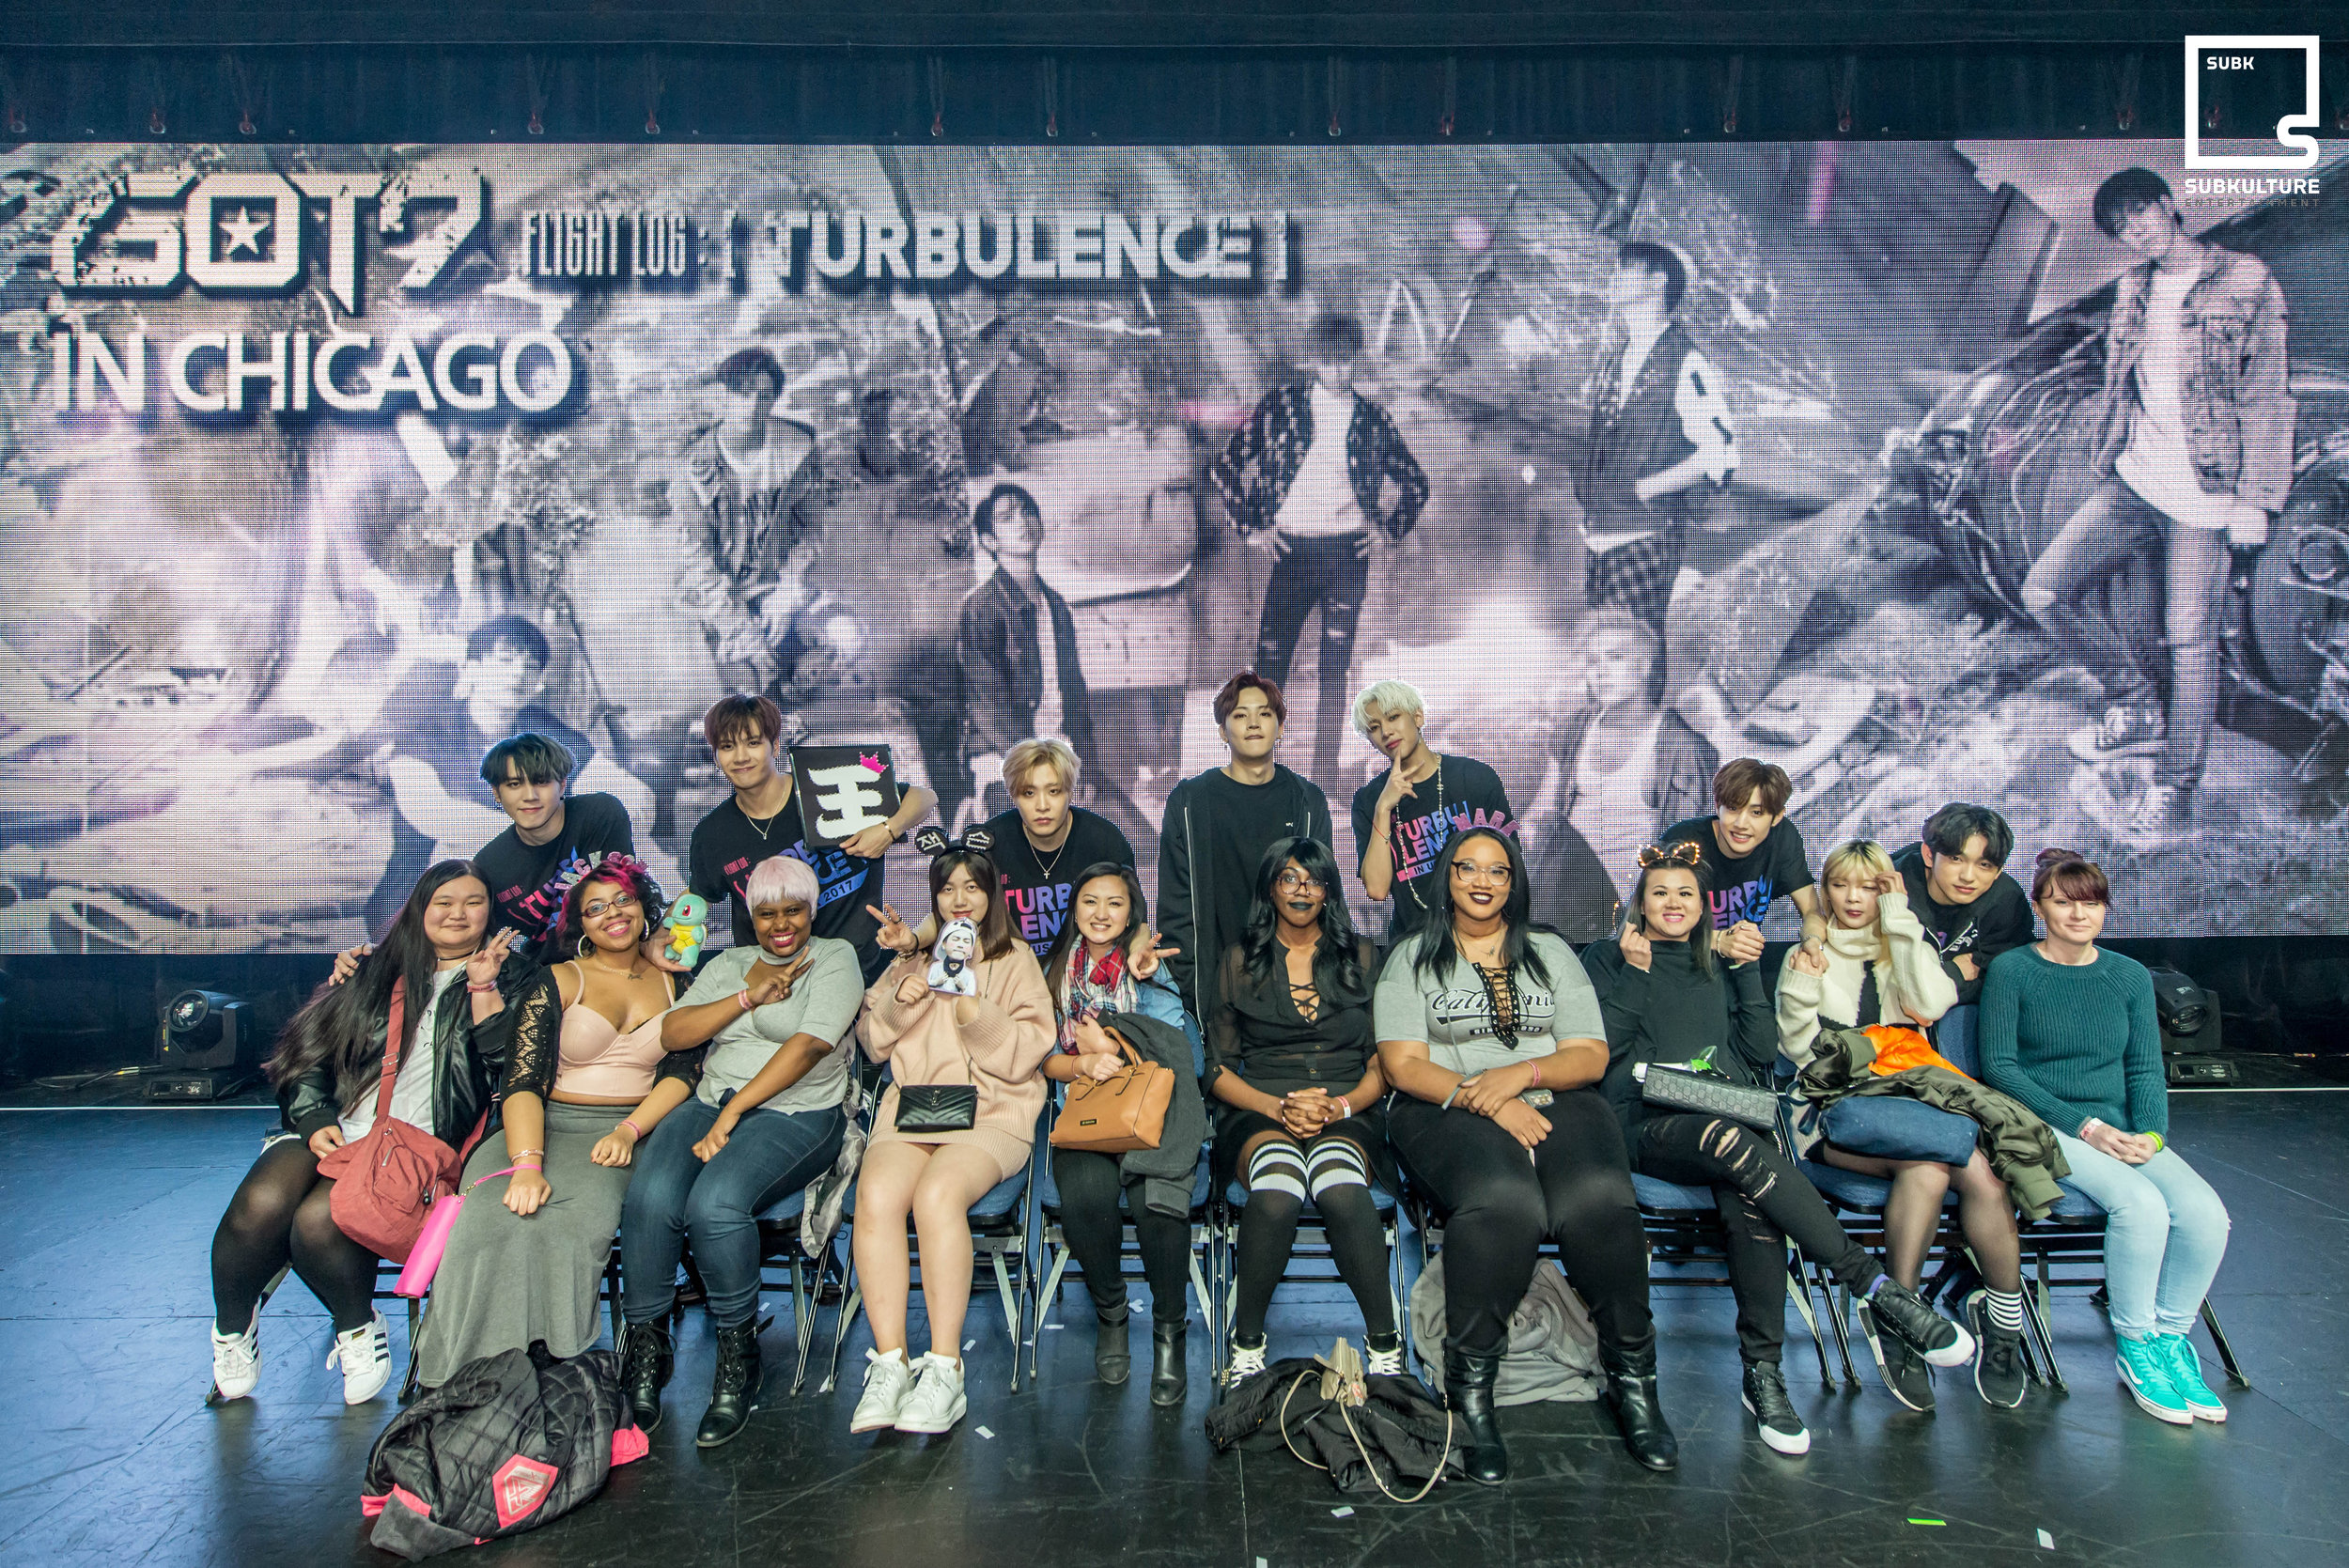 GOT7 Fan Photo Chicago Rosemont Theatre 2017 SubKulture Entertainment-3225 copy.jpg